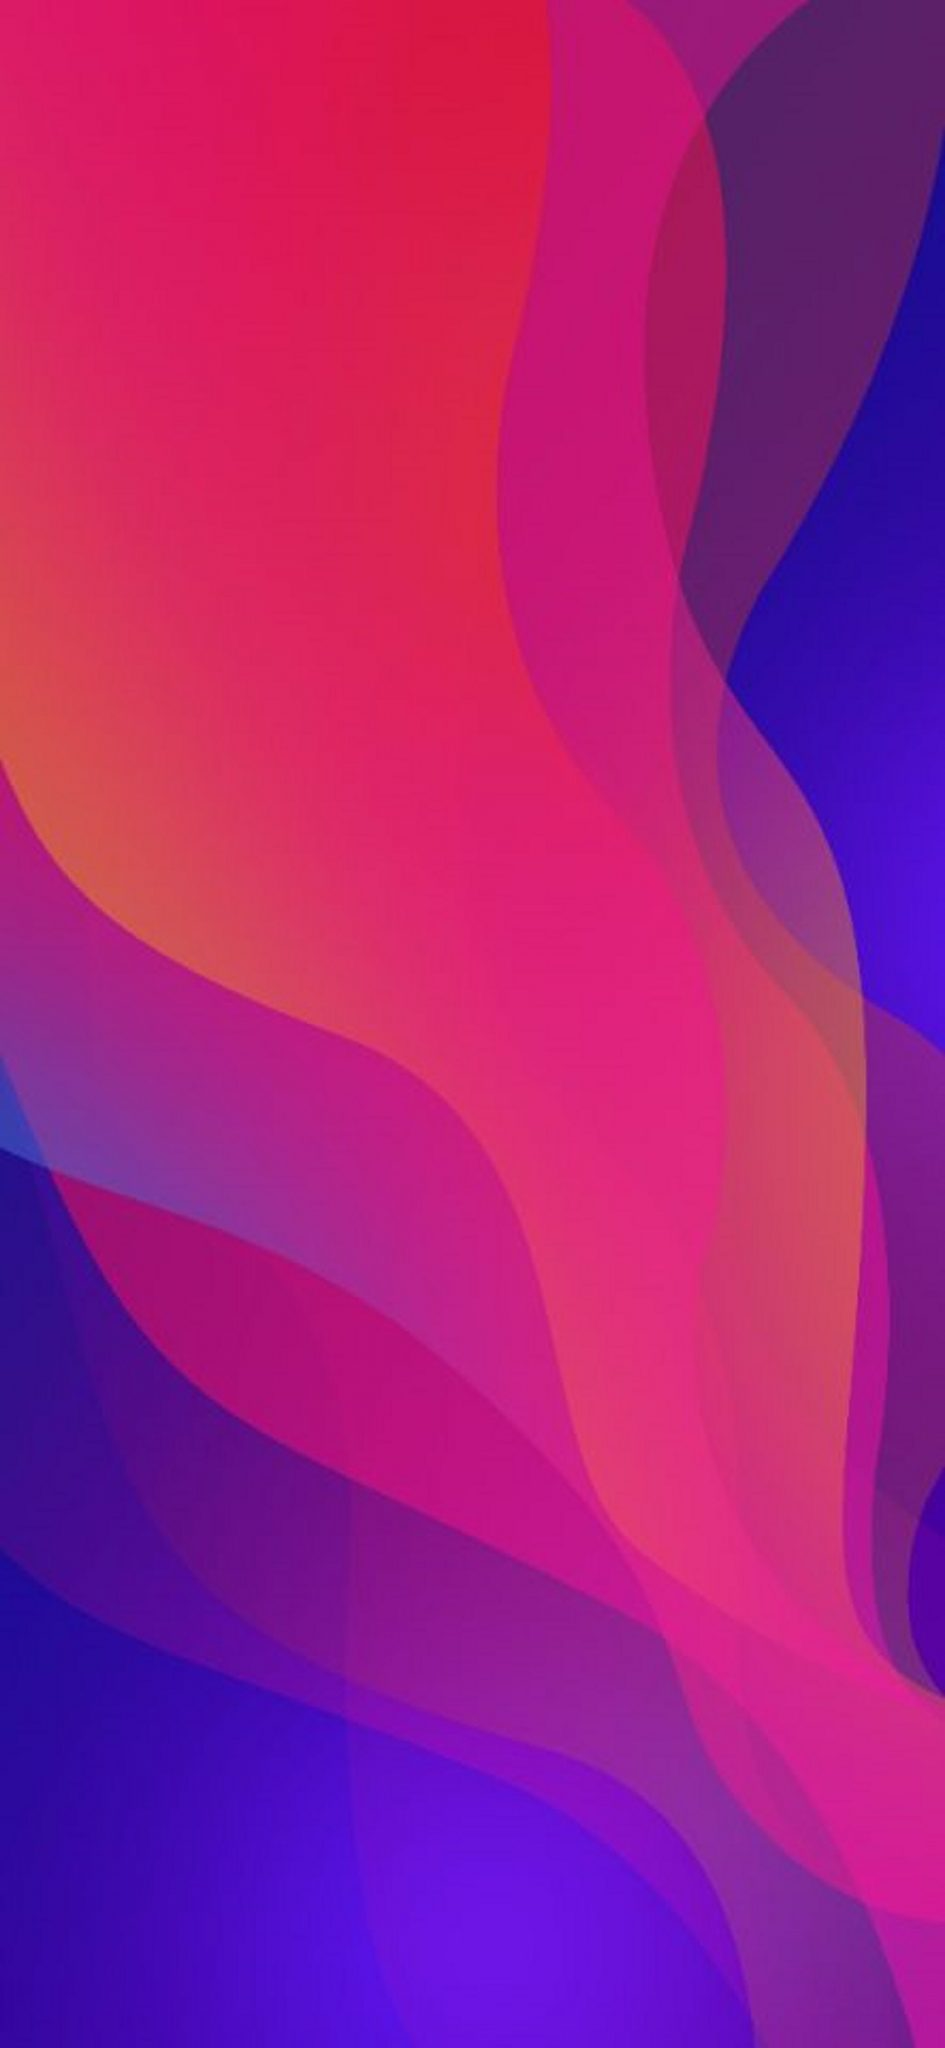 Download Oppo Find X Stock Wallpapers - ZIP File Included 7